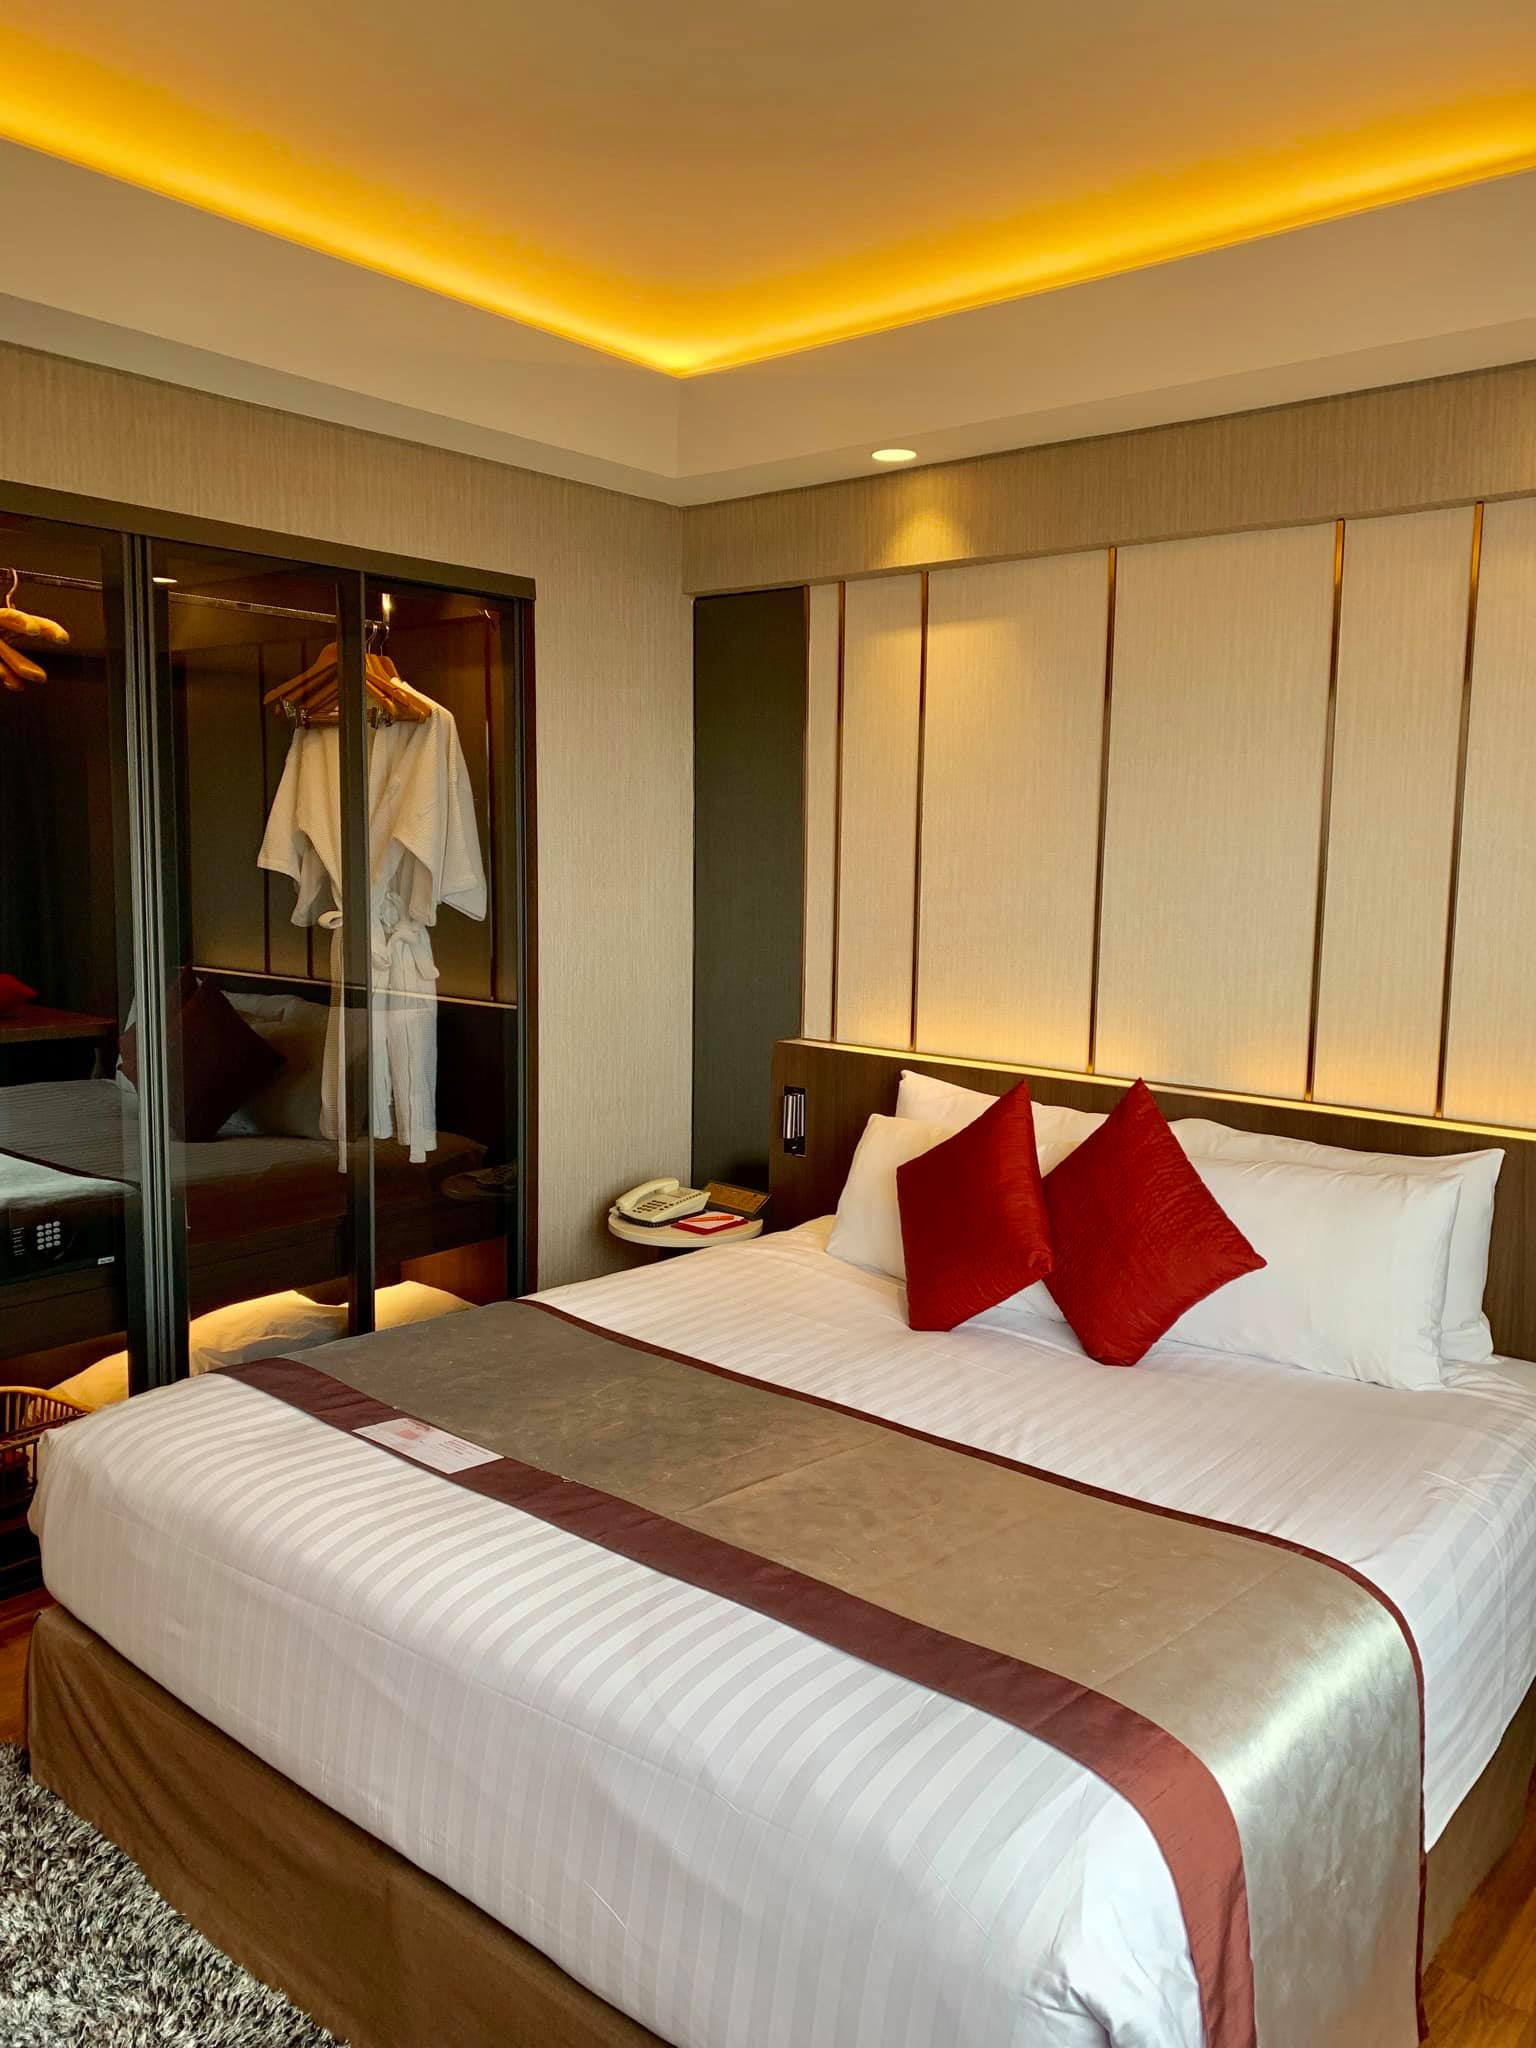 Our Luxurious Staycation At Ramada Plaza In Bangkok And Our Tour With Tinggly Experiences23